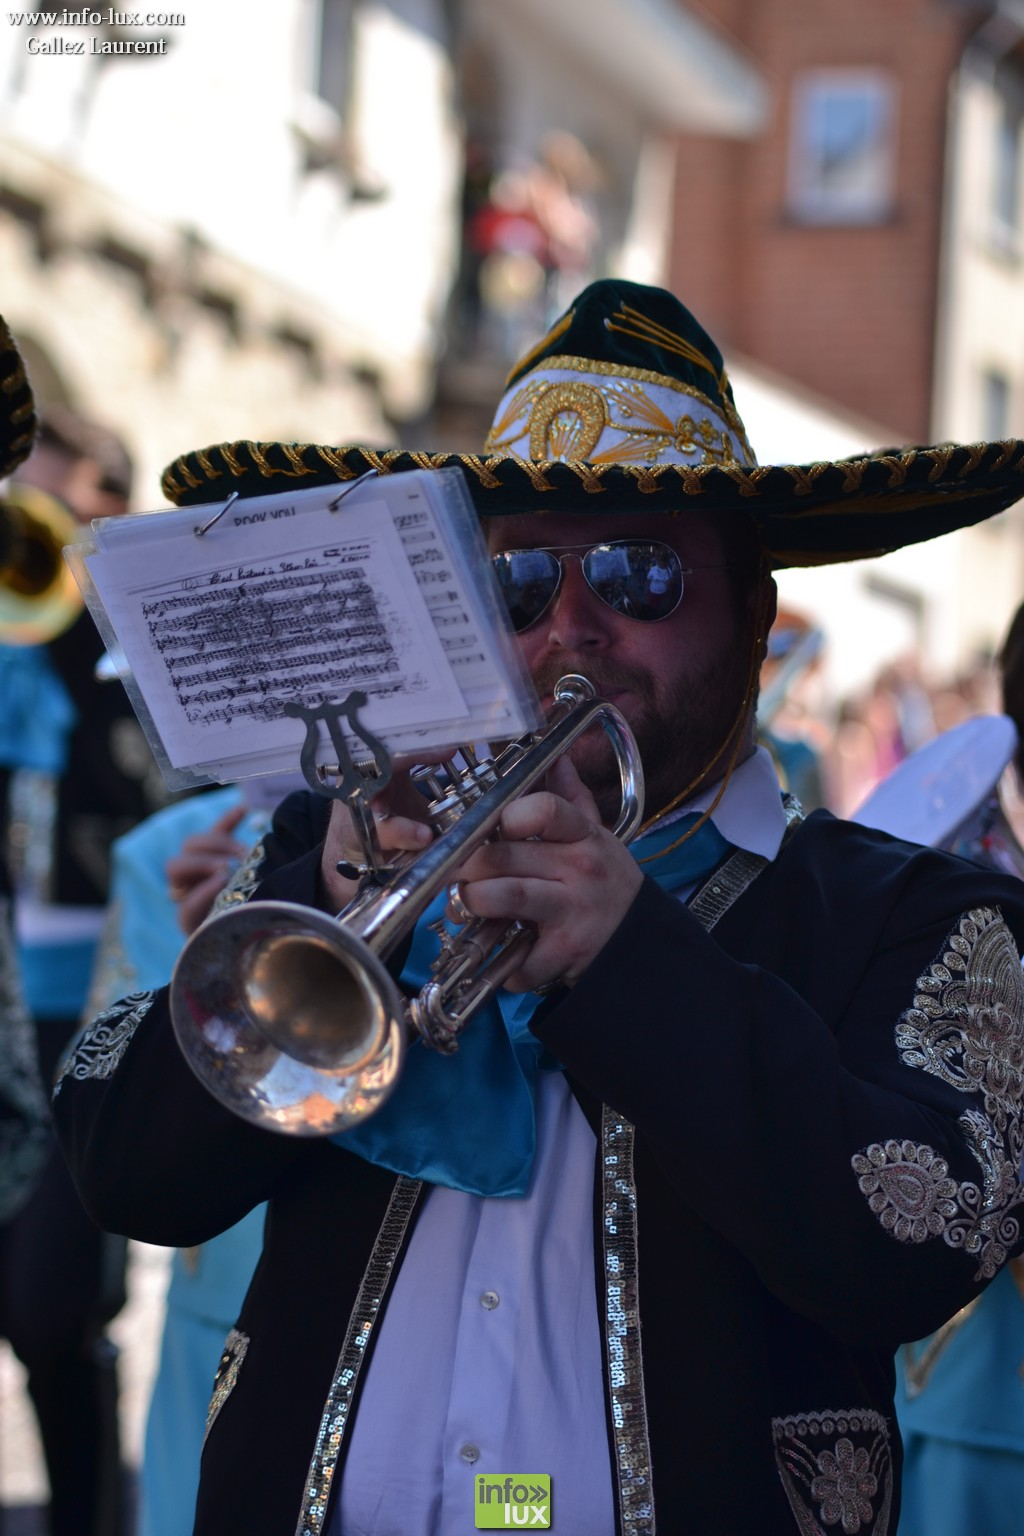 images/stories/PHOTOSREP/2016Aout/Houffalize/Carnaval2/carnaval00020